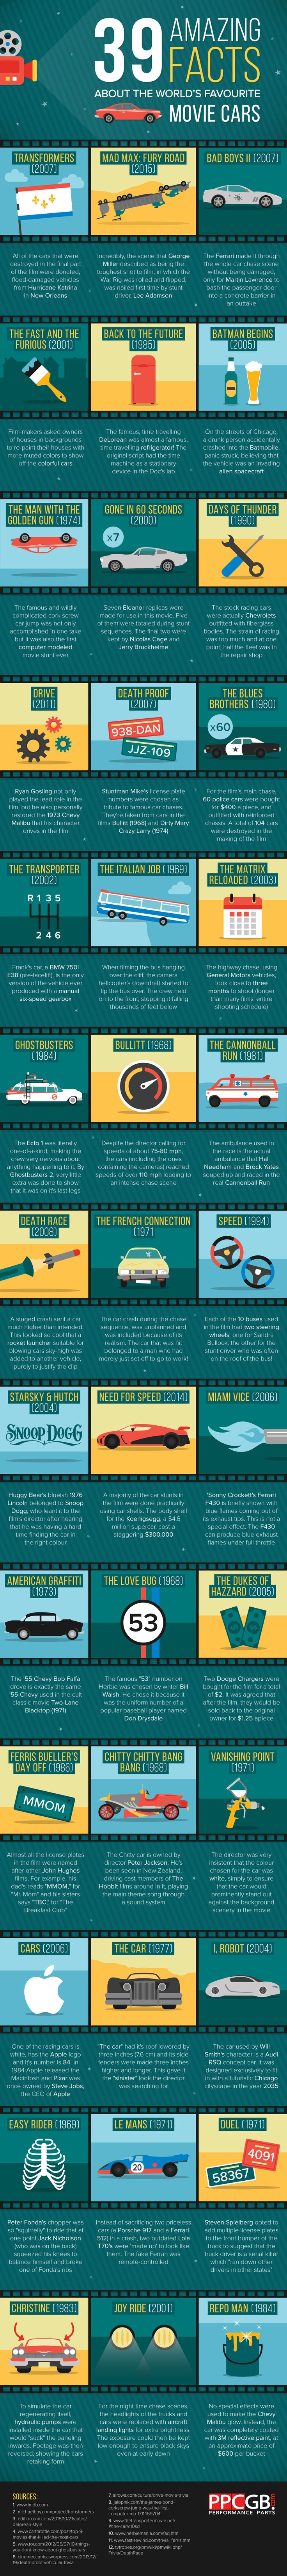 39 Amazing Facts About the World's Favourite Movie Cars #Infographic